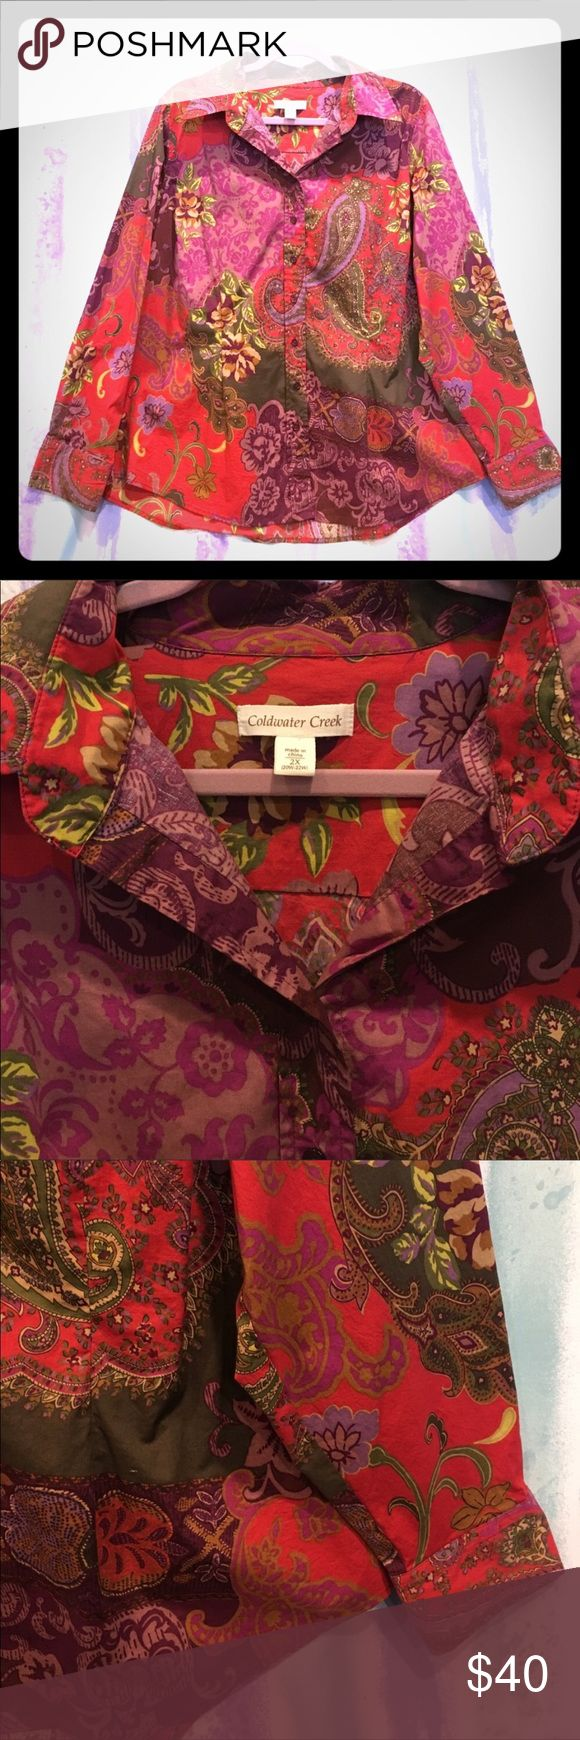 """Coldwater Creek plus size 2x button long sleeve Coldwater Creek plus size 2x button long sleeve purple red multi colored print top 28.5""""length Coldwater Creek Tops Button Down Shirts"""